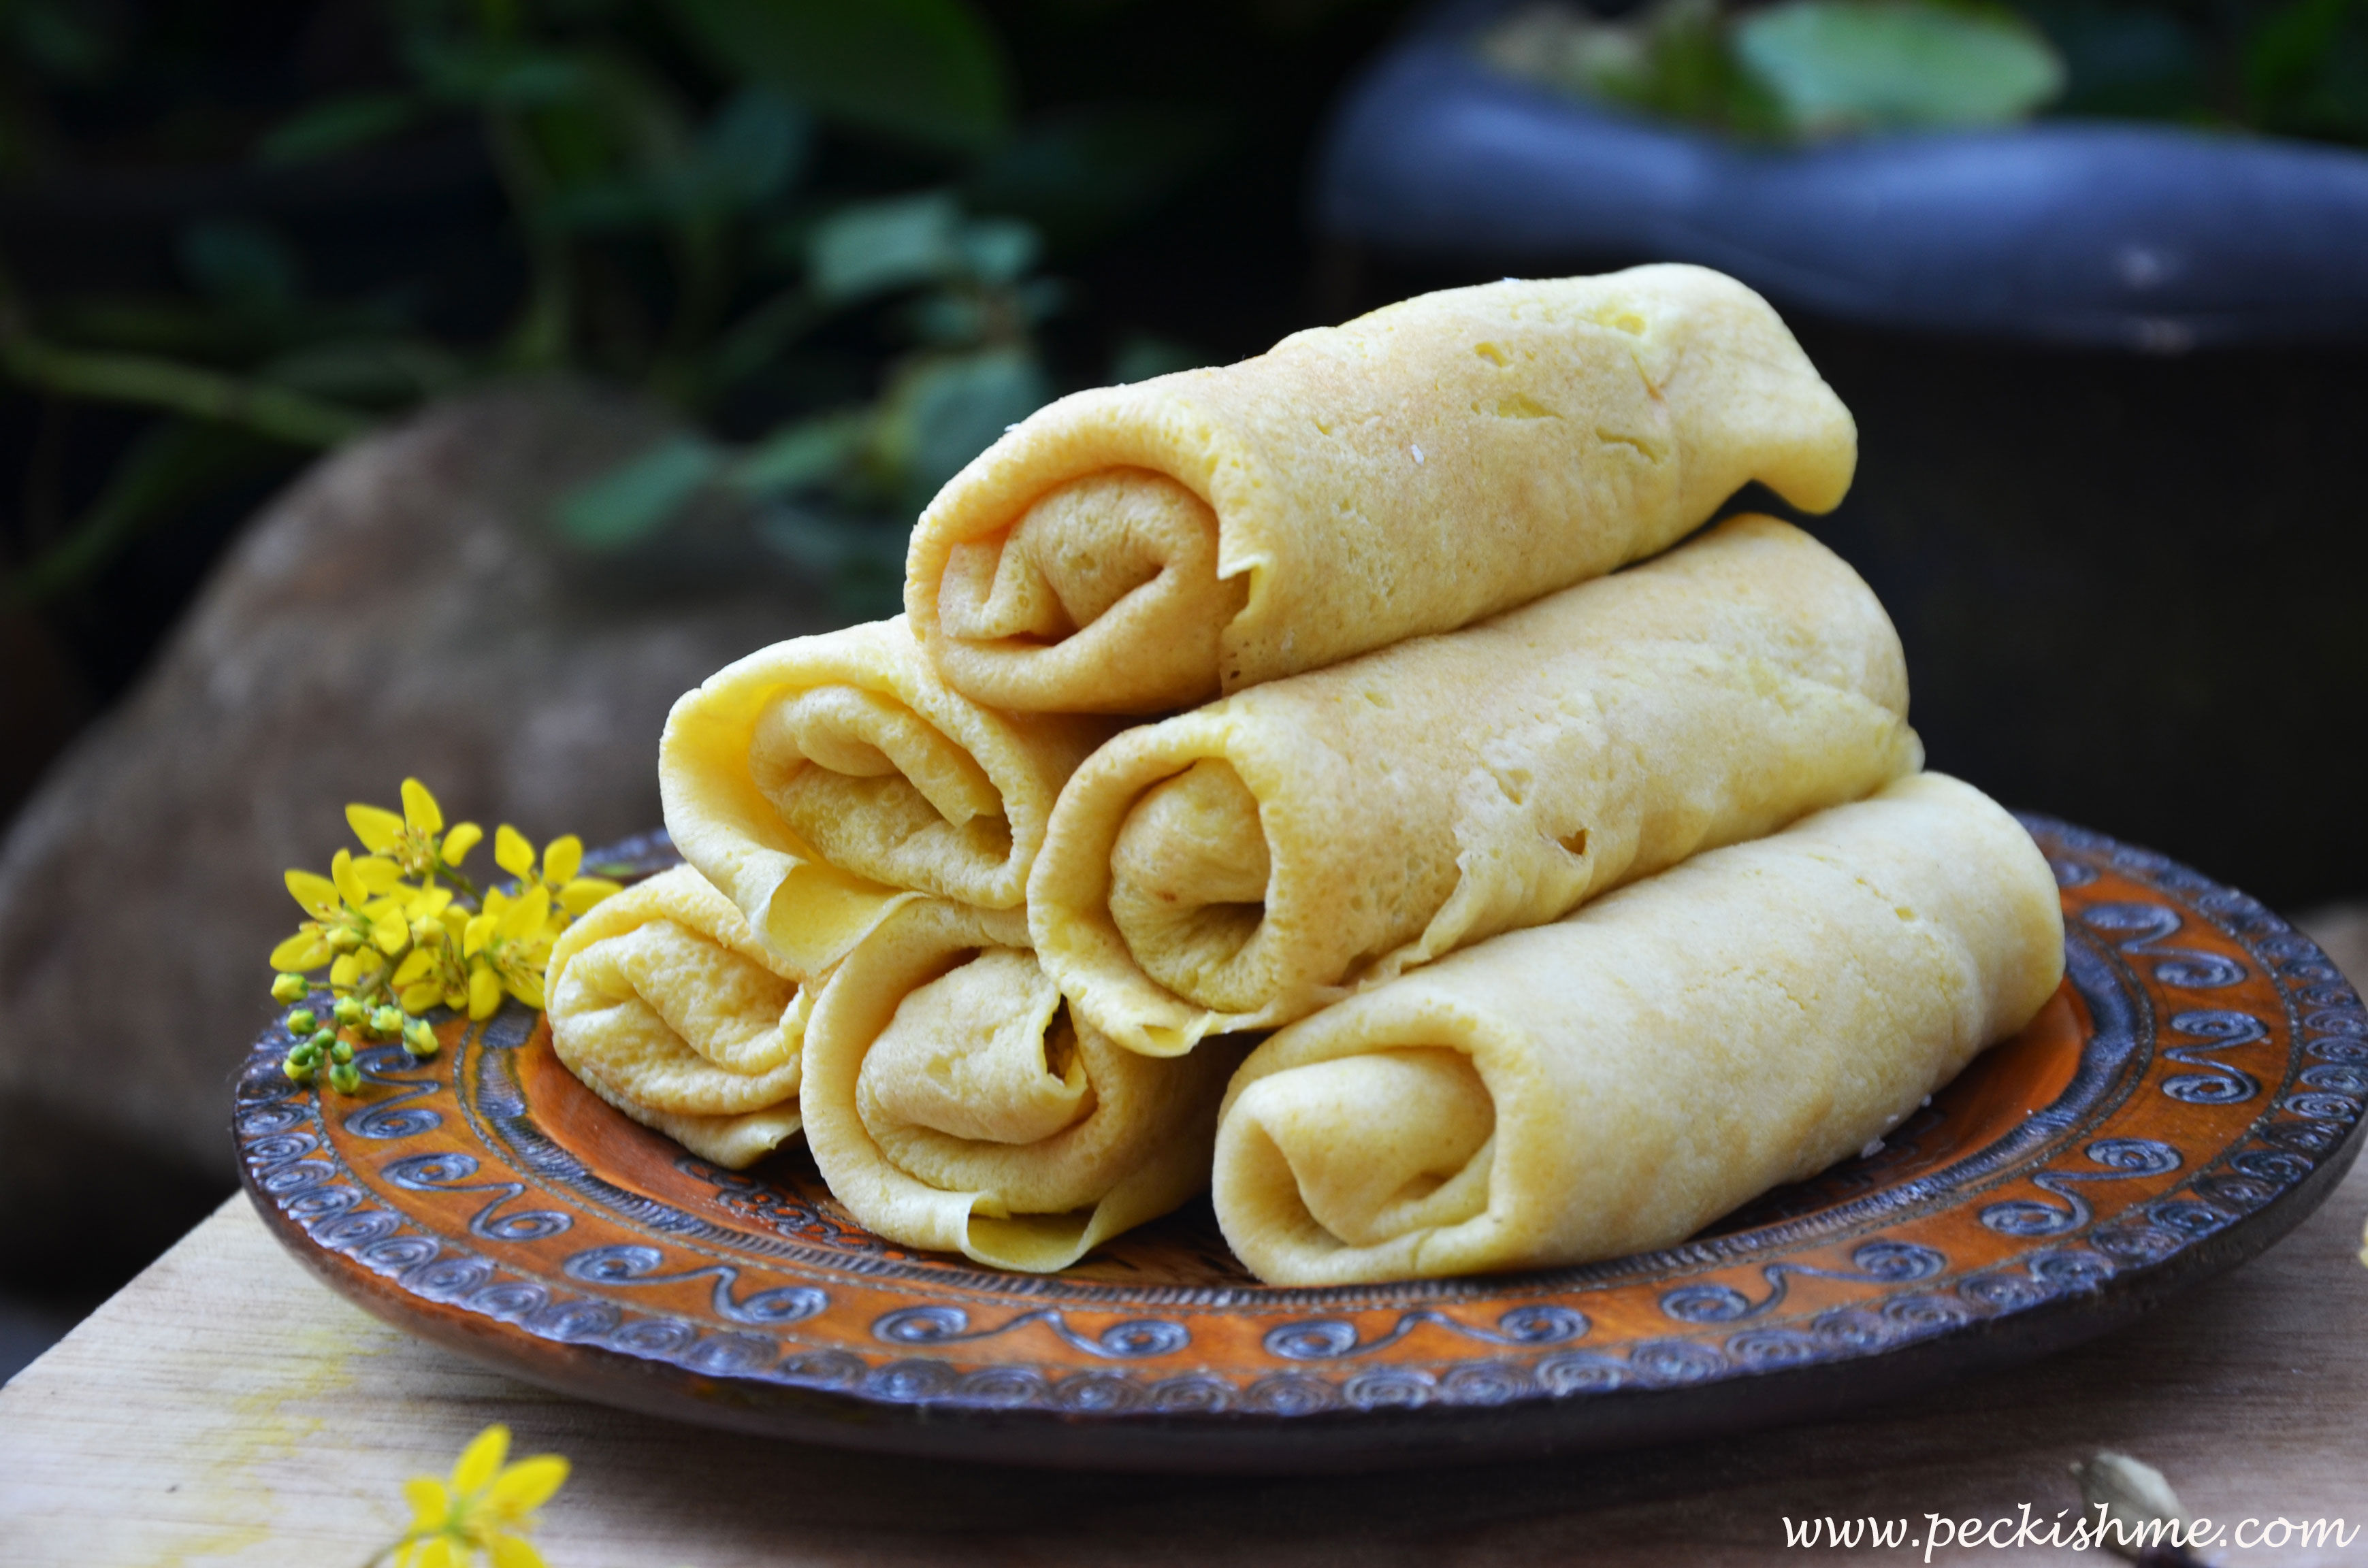 Sri lankan pancakes wellawahum peckish me a silky crepe with hints of savory turmeric enrobing an opulent body of rich dark silky coconut the tongue encounters the salty crepe first ccuart Gallery